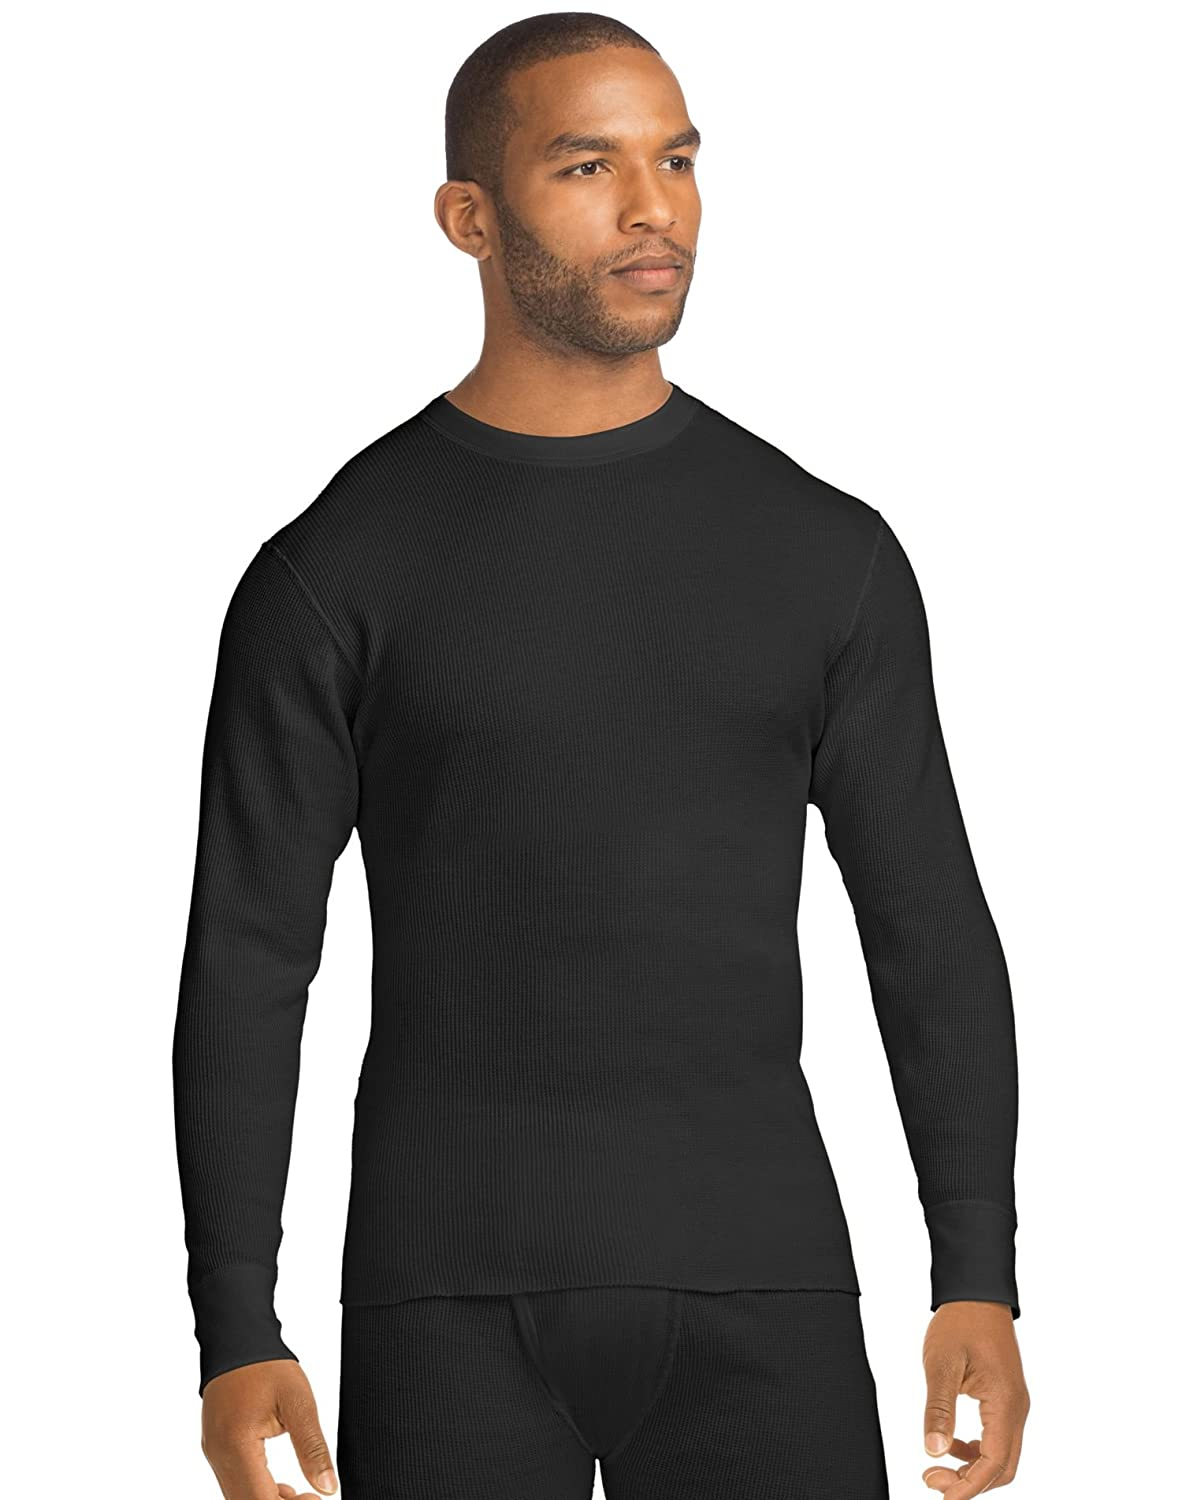 Hanes Mens BEEFY Organic Cotton Thermal Crew 28569